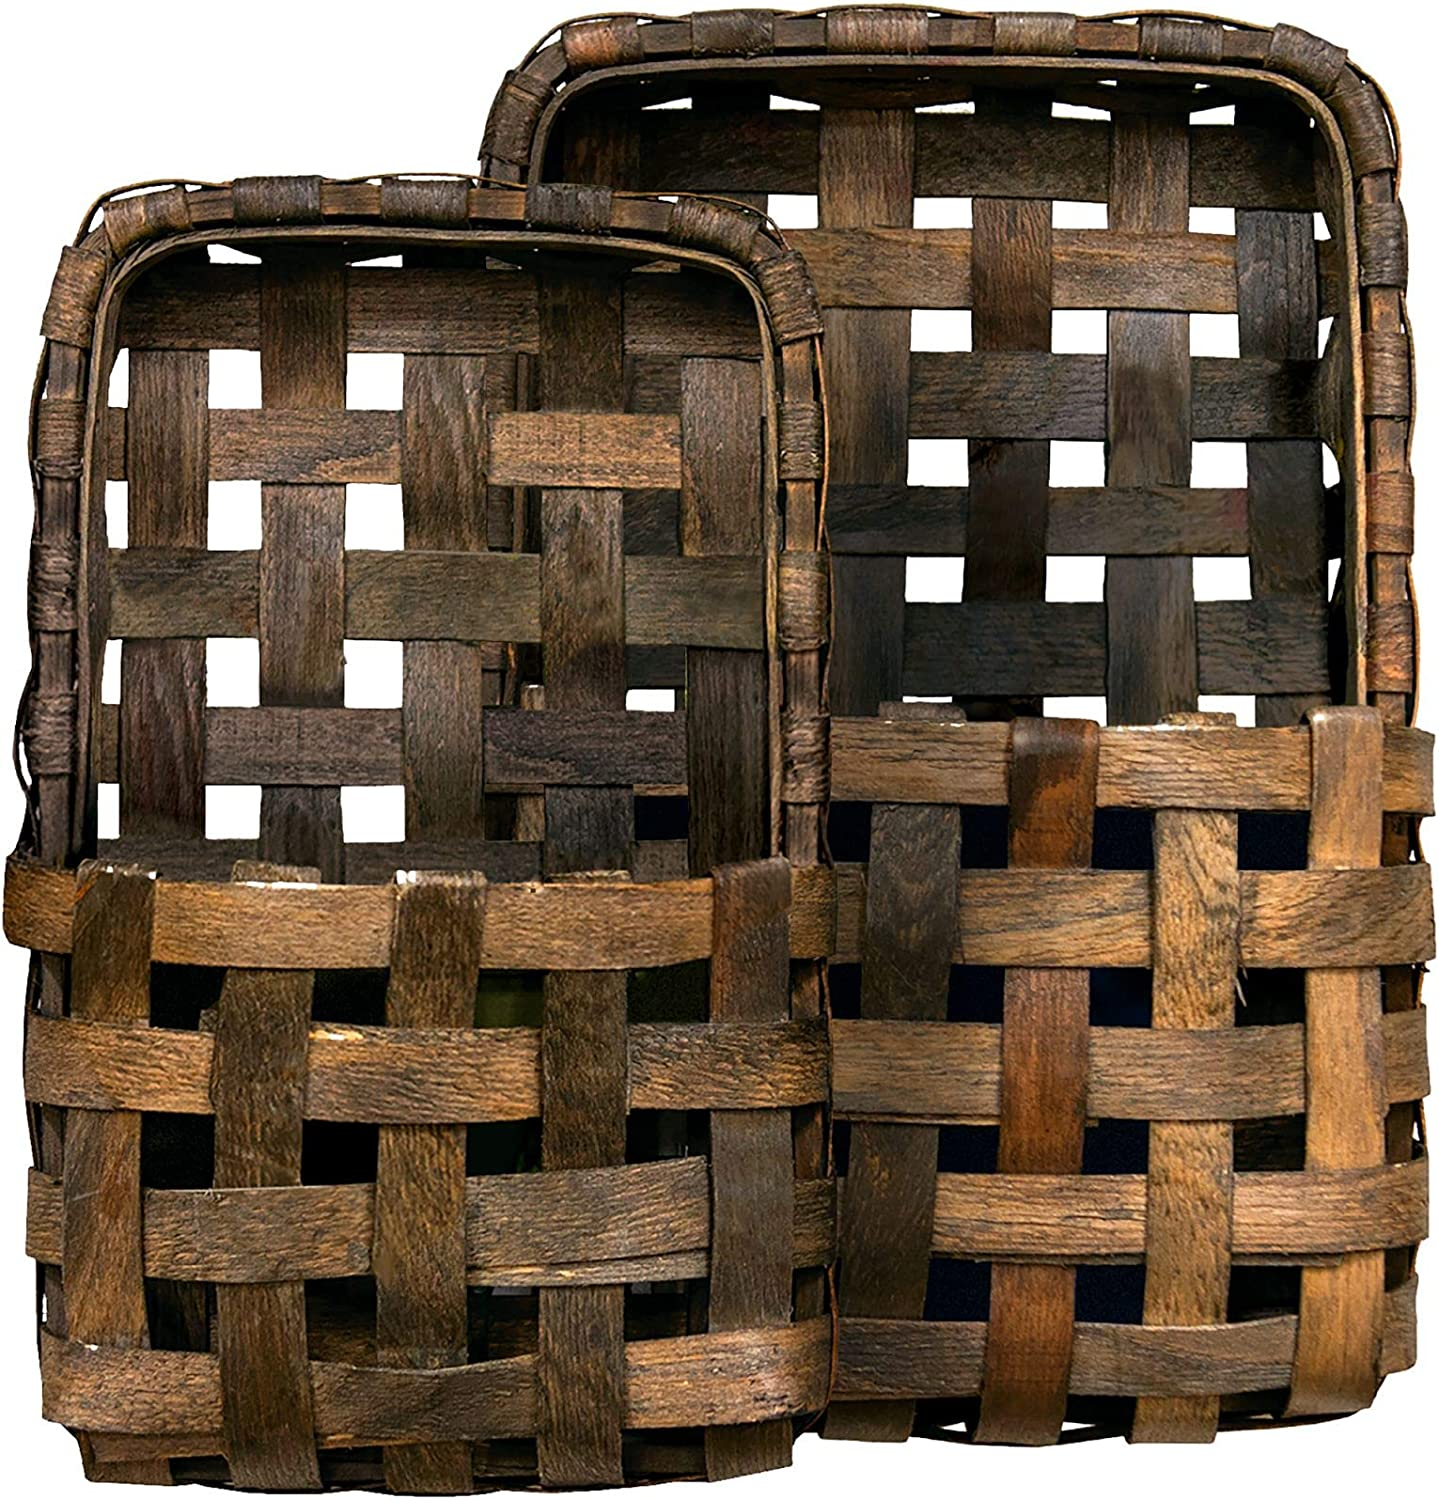 CWI Gifts sold out Brown Tobacco Award Wall 2 Multi Set Baskets Pocket